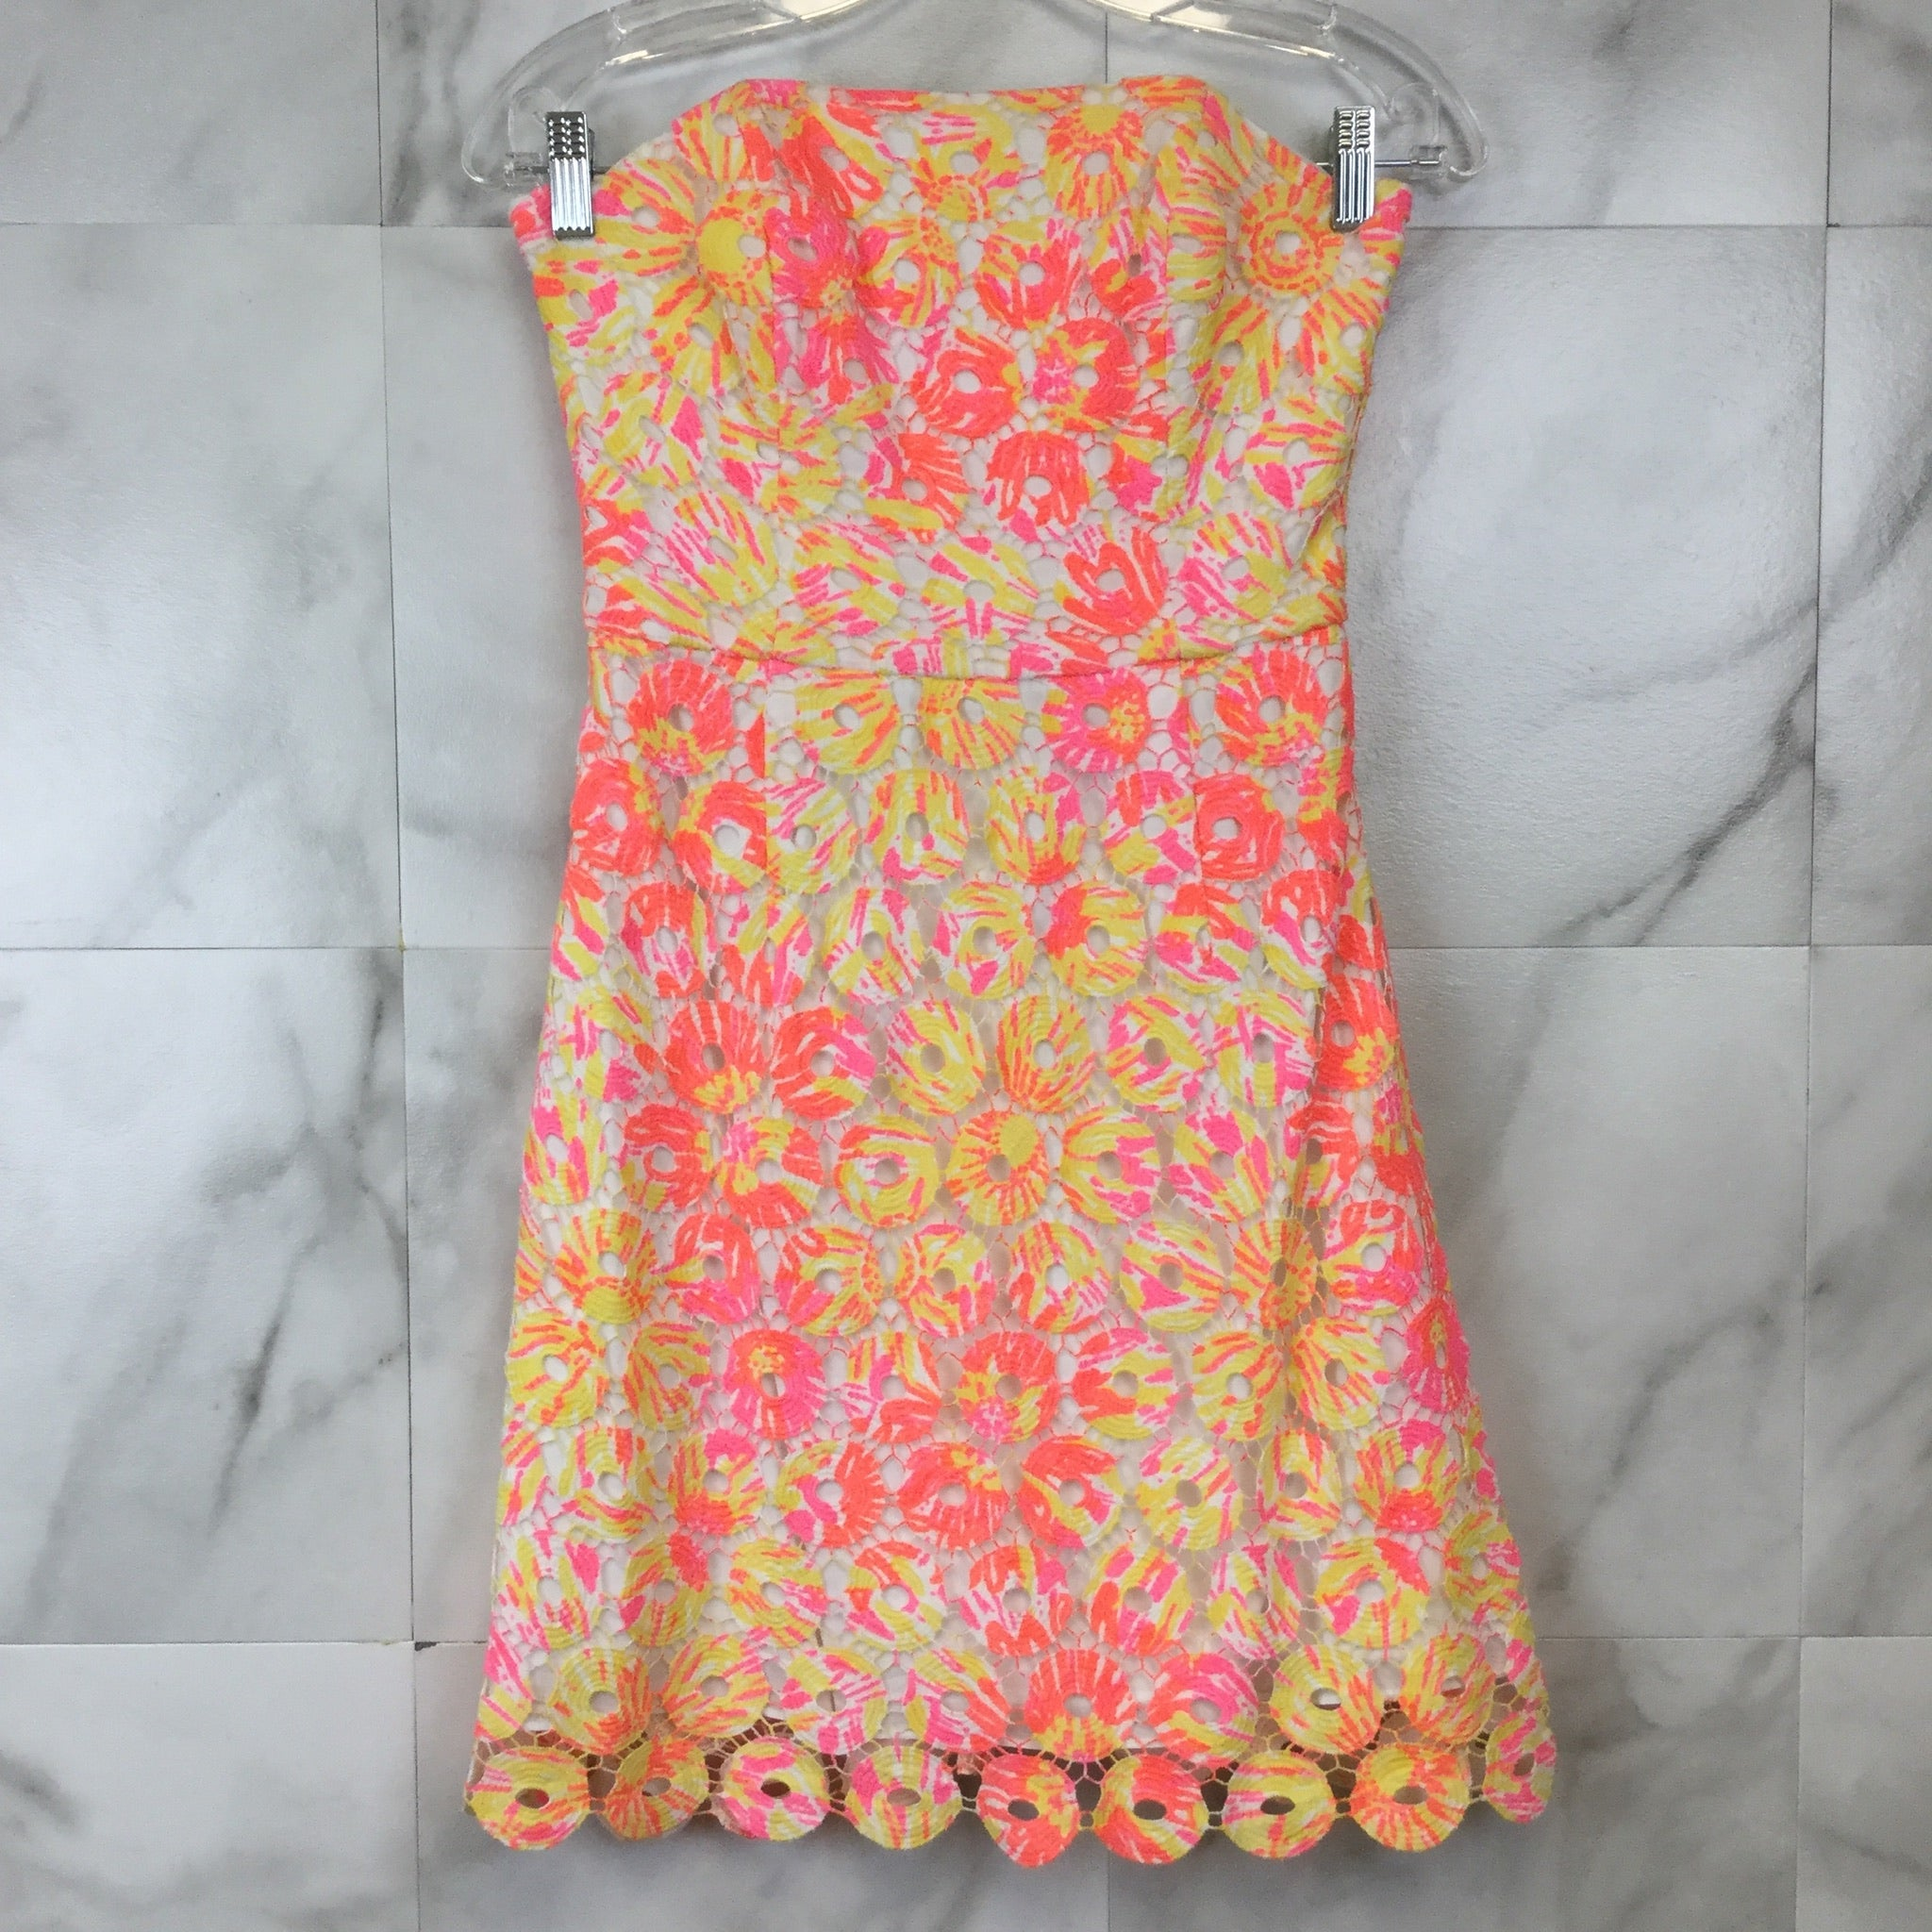 Lilly Pulitzer Rana Dress - size 0